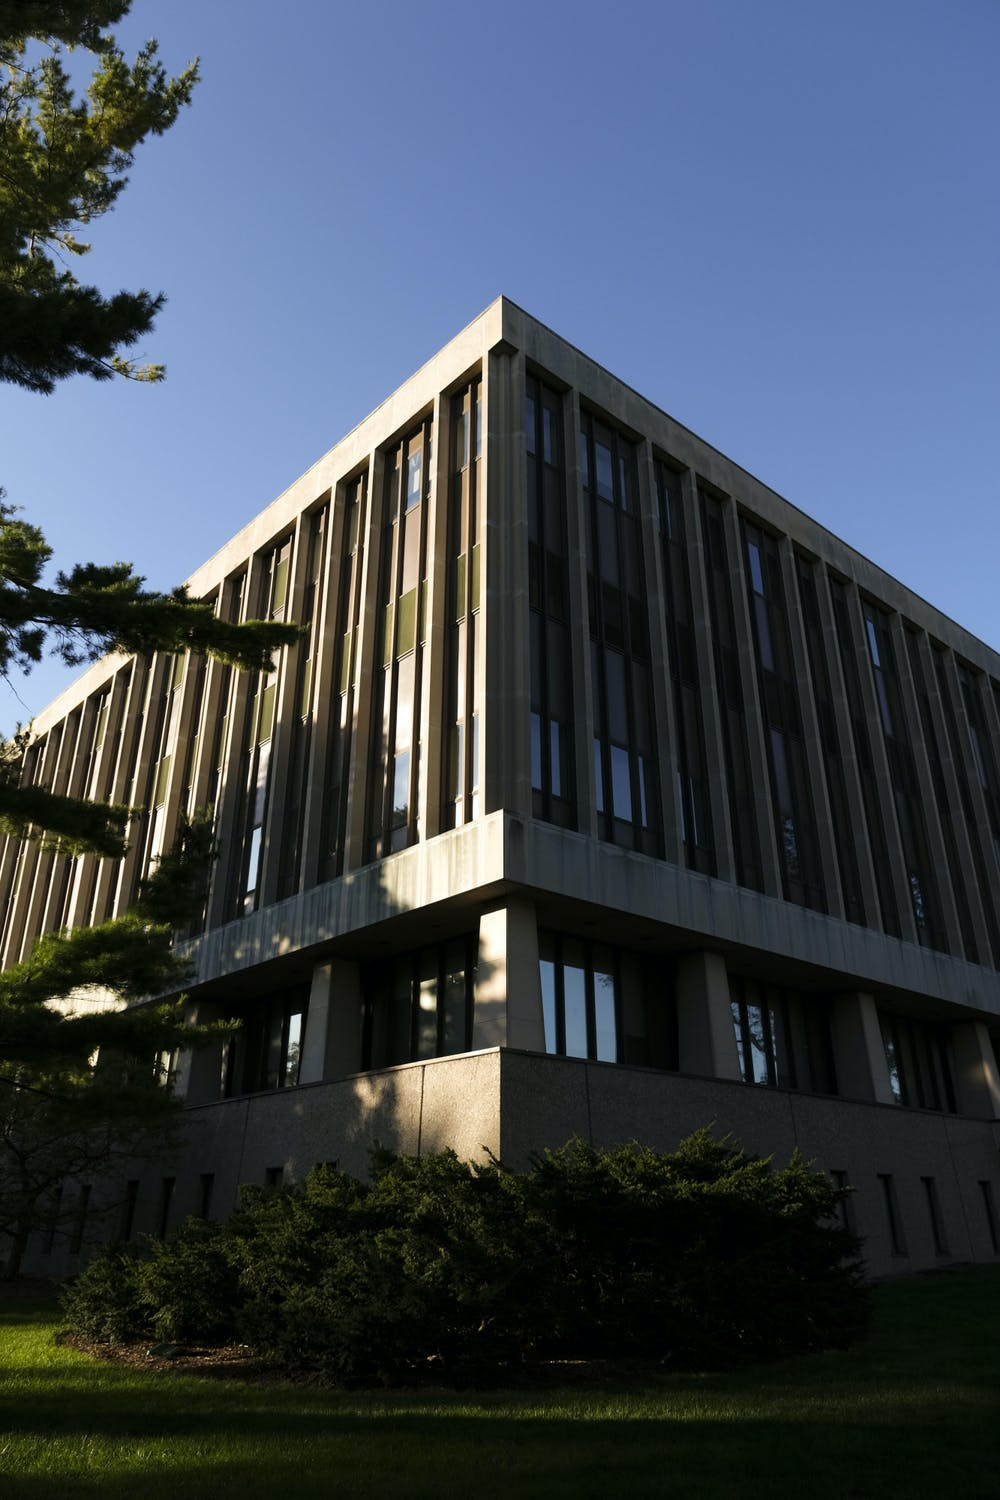 <p>The Hannah Administration Building on Sept. 20, 2020.</p>